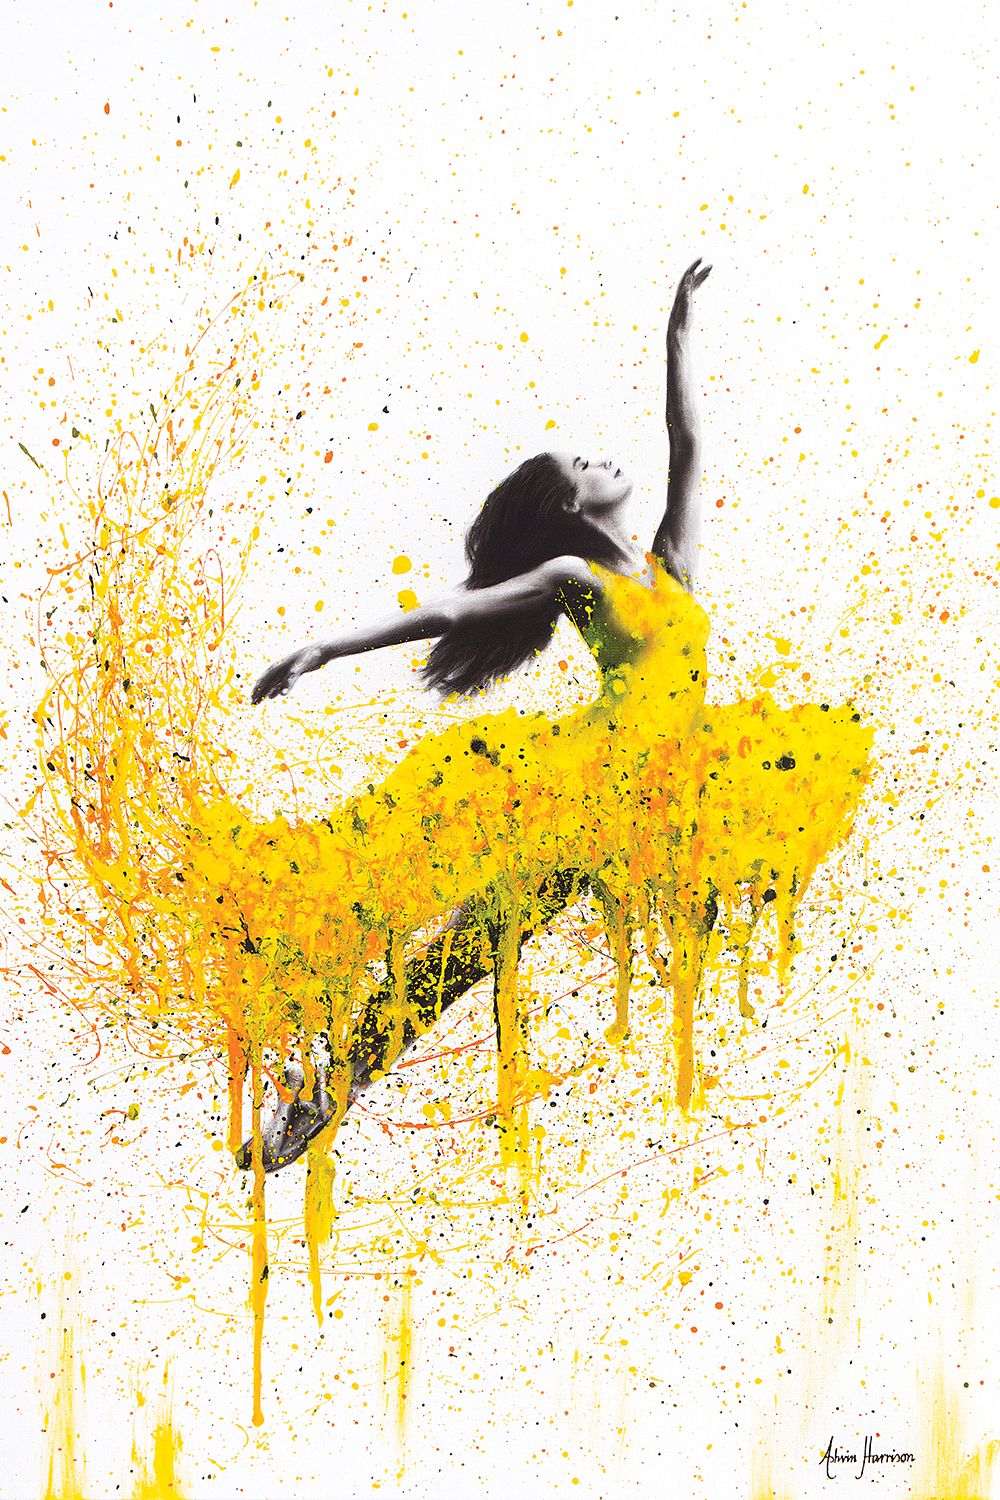 Female dancing in yellow splattered dress on a white background